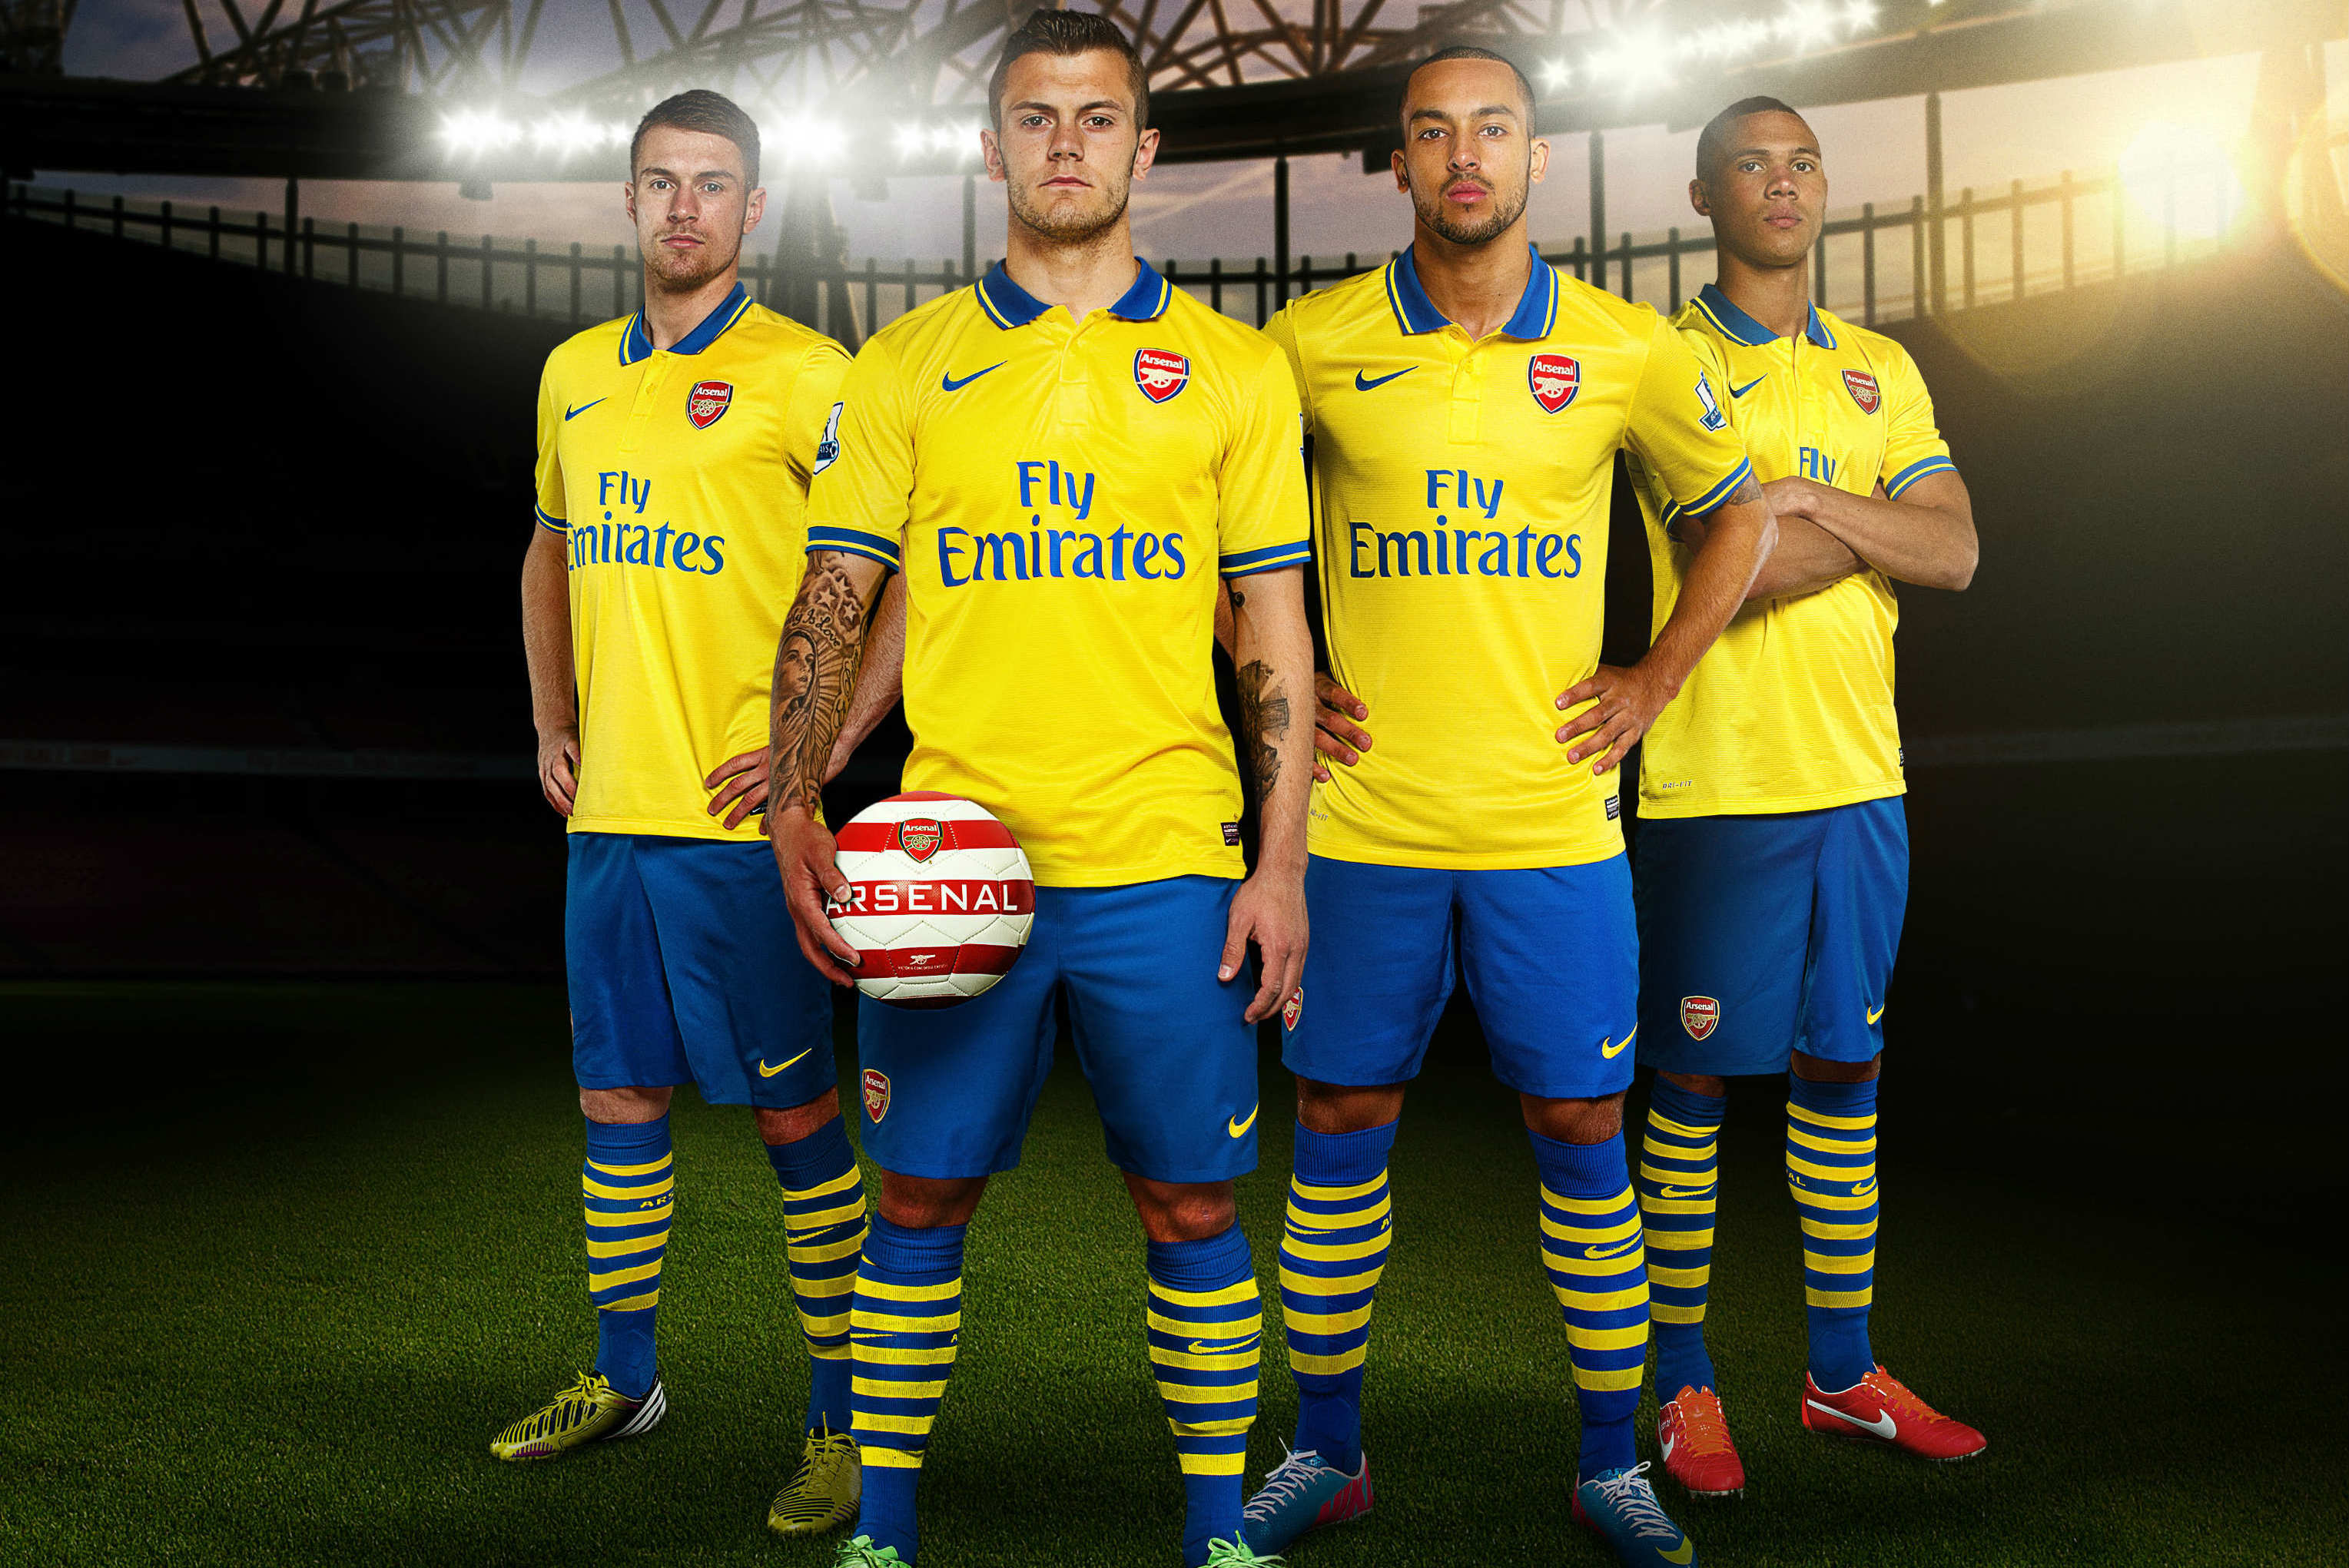 lowest price ec5f5 051c5 Arsenal Launch New 2013-14 Away Kit at the Emirates Stadium ...